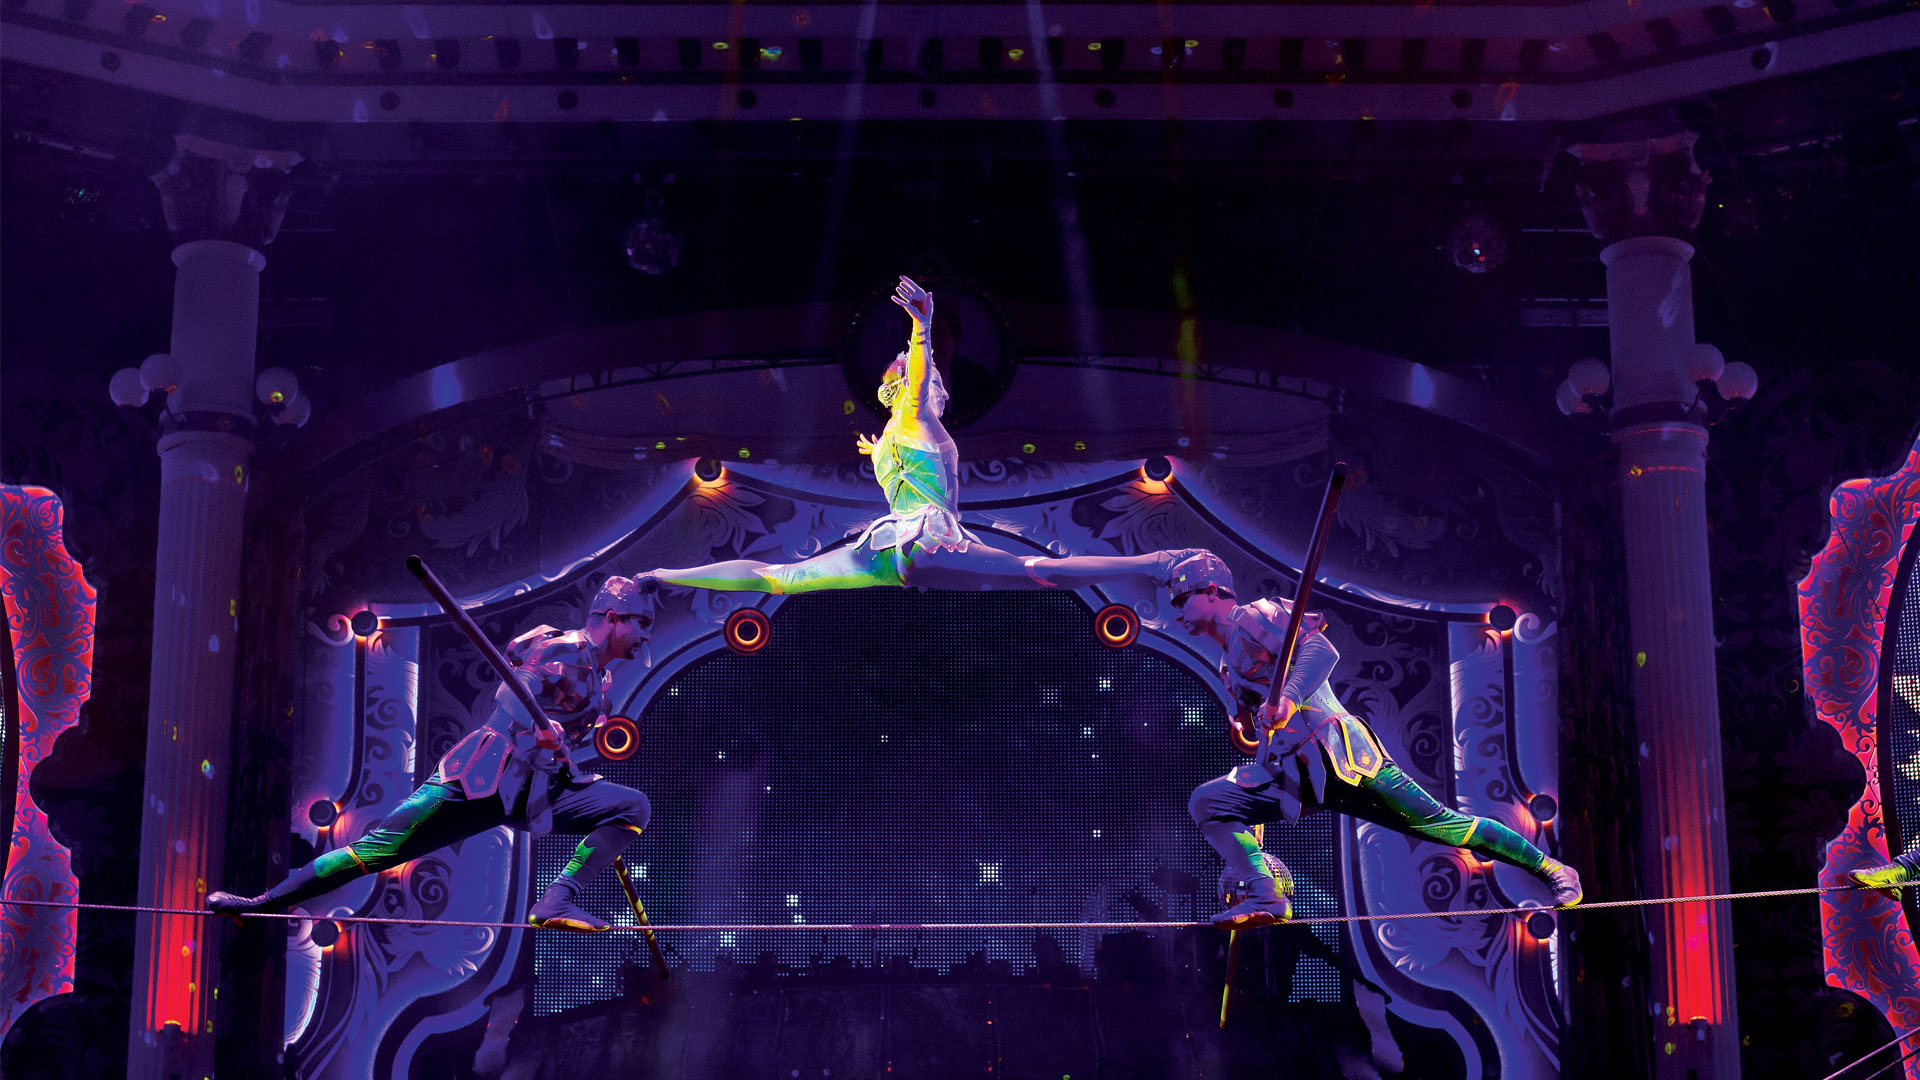 Highwire Slide at the Moscow State Circus